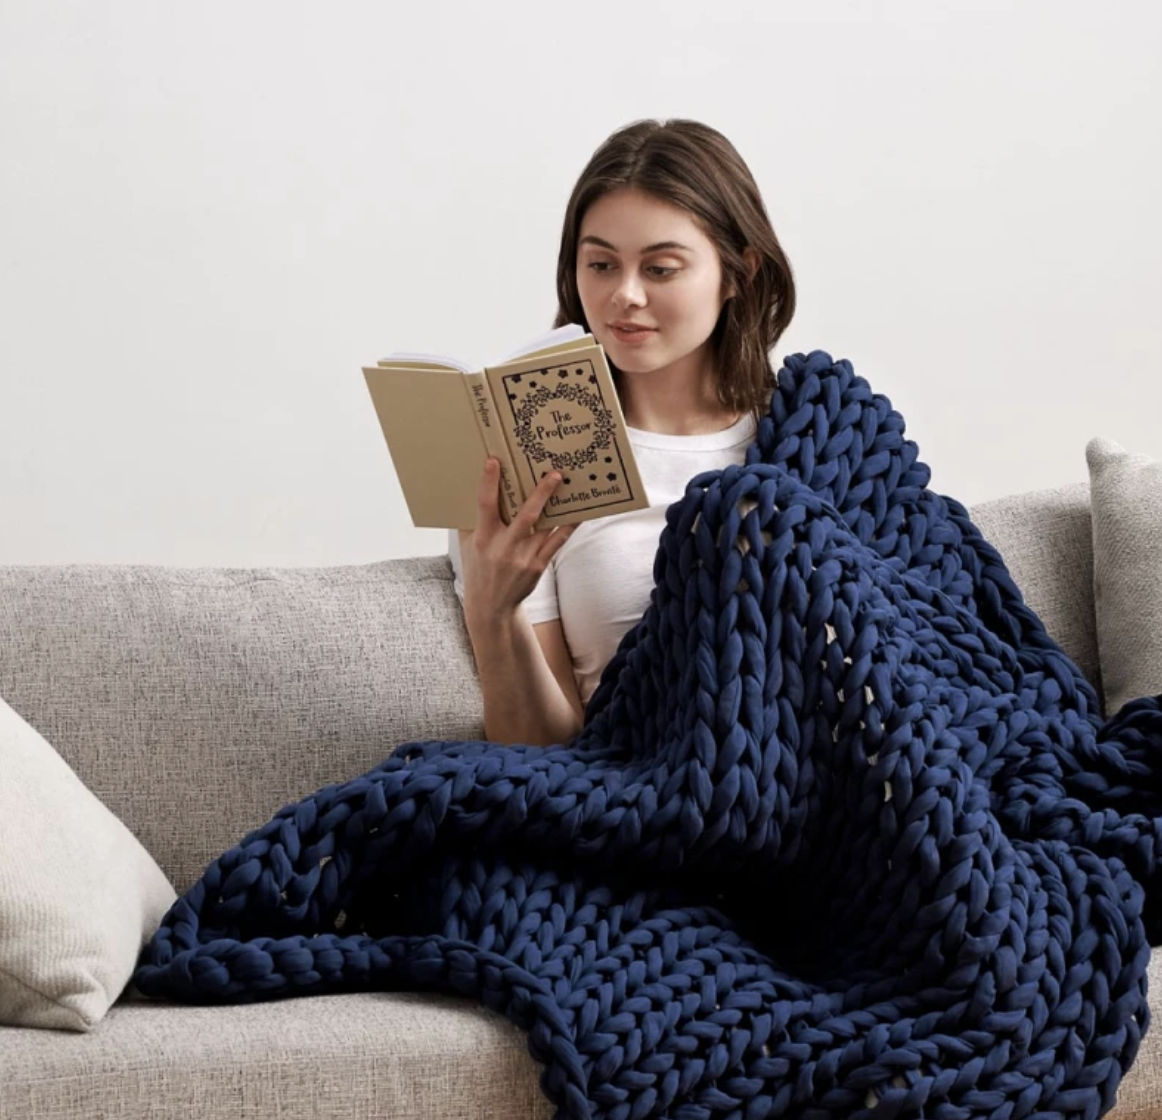 person under the knitted blanket on a couch